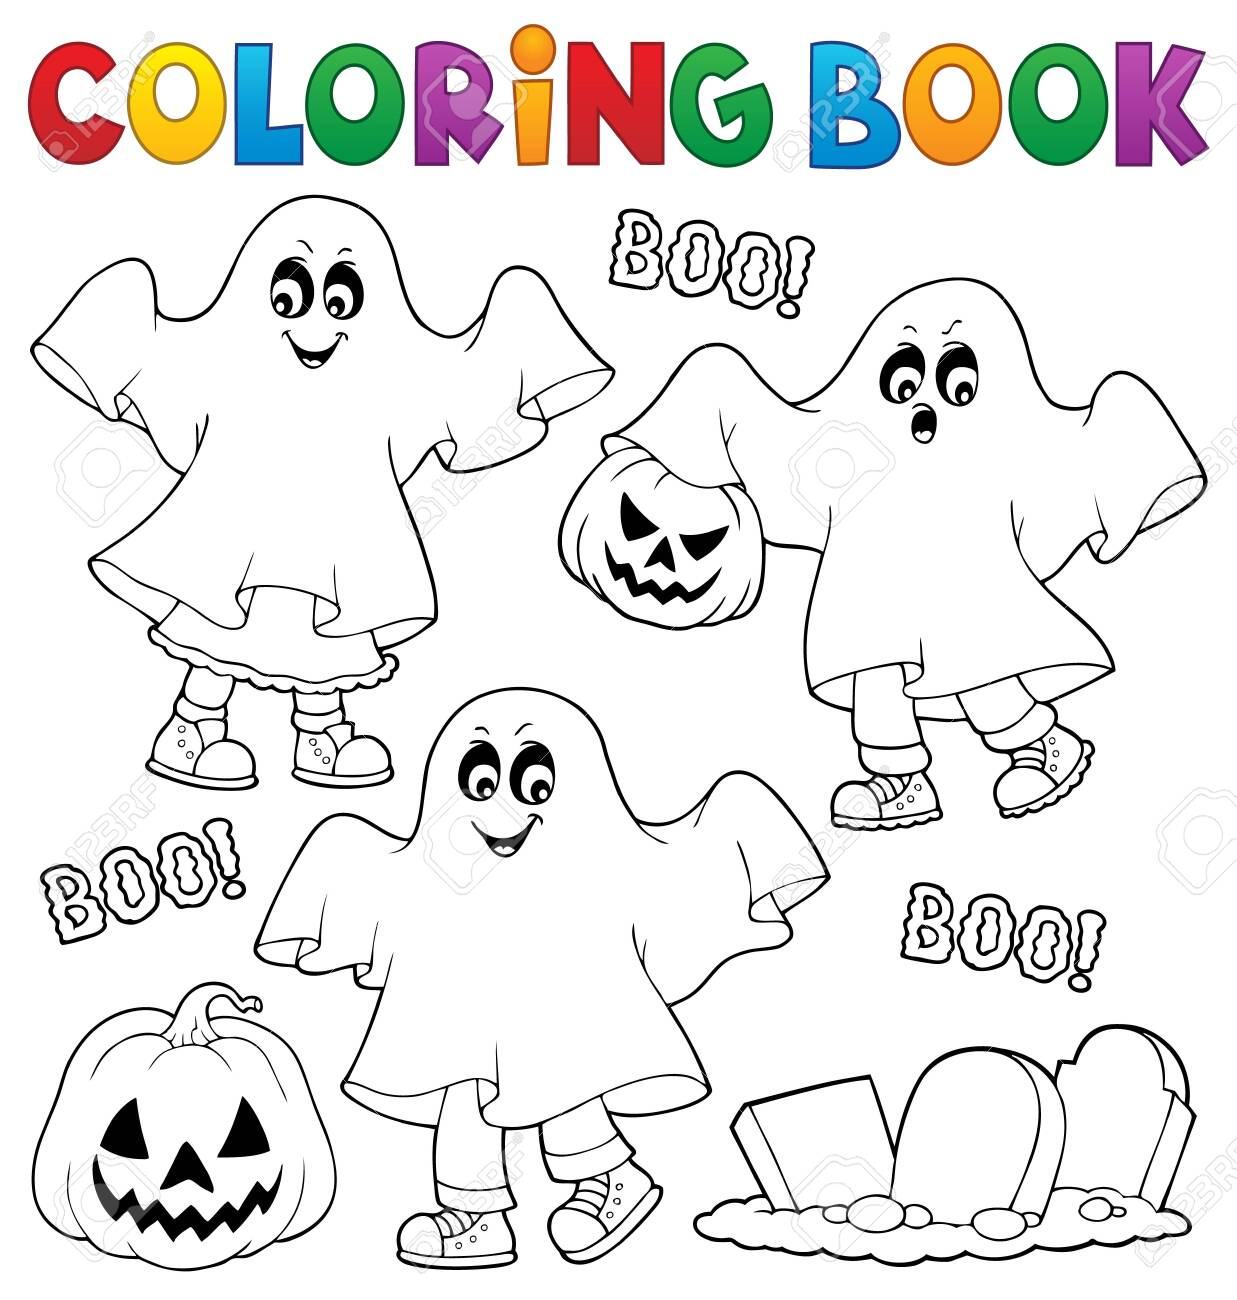 - Coloring Book Kids In Ghost Costumes Vector Illustration. Royalty